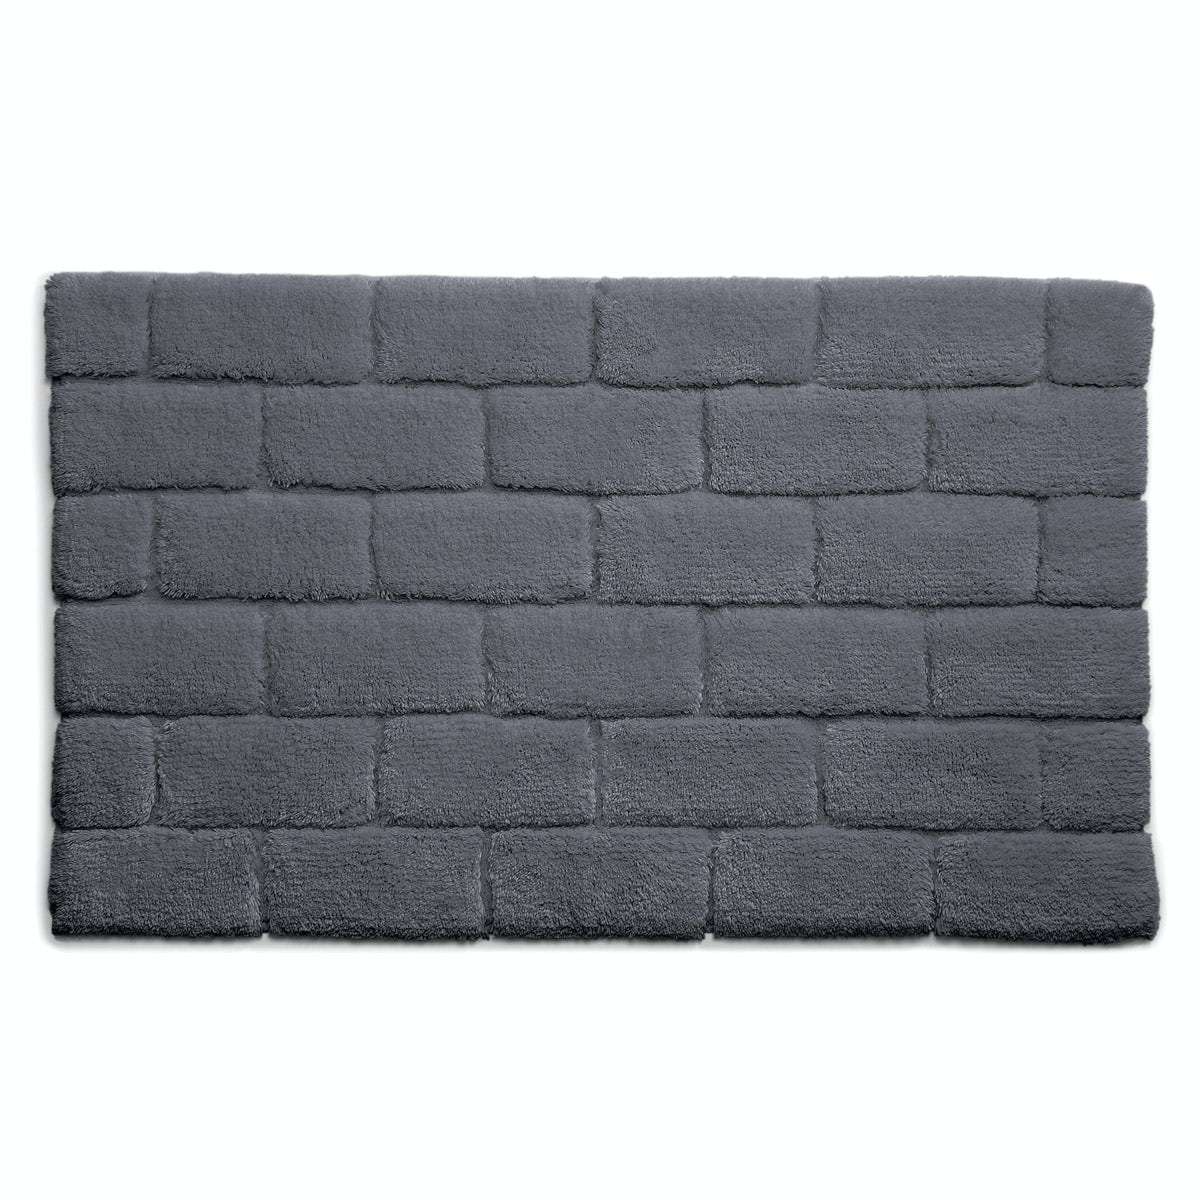 Hug Rug luxury bamboo brick graphite bathroom mat 50 x 80cm